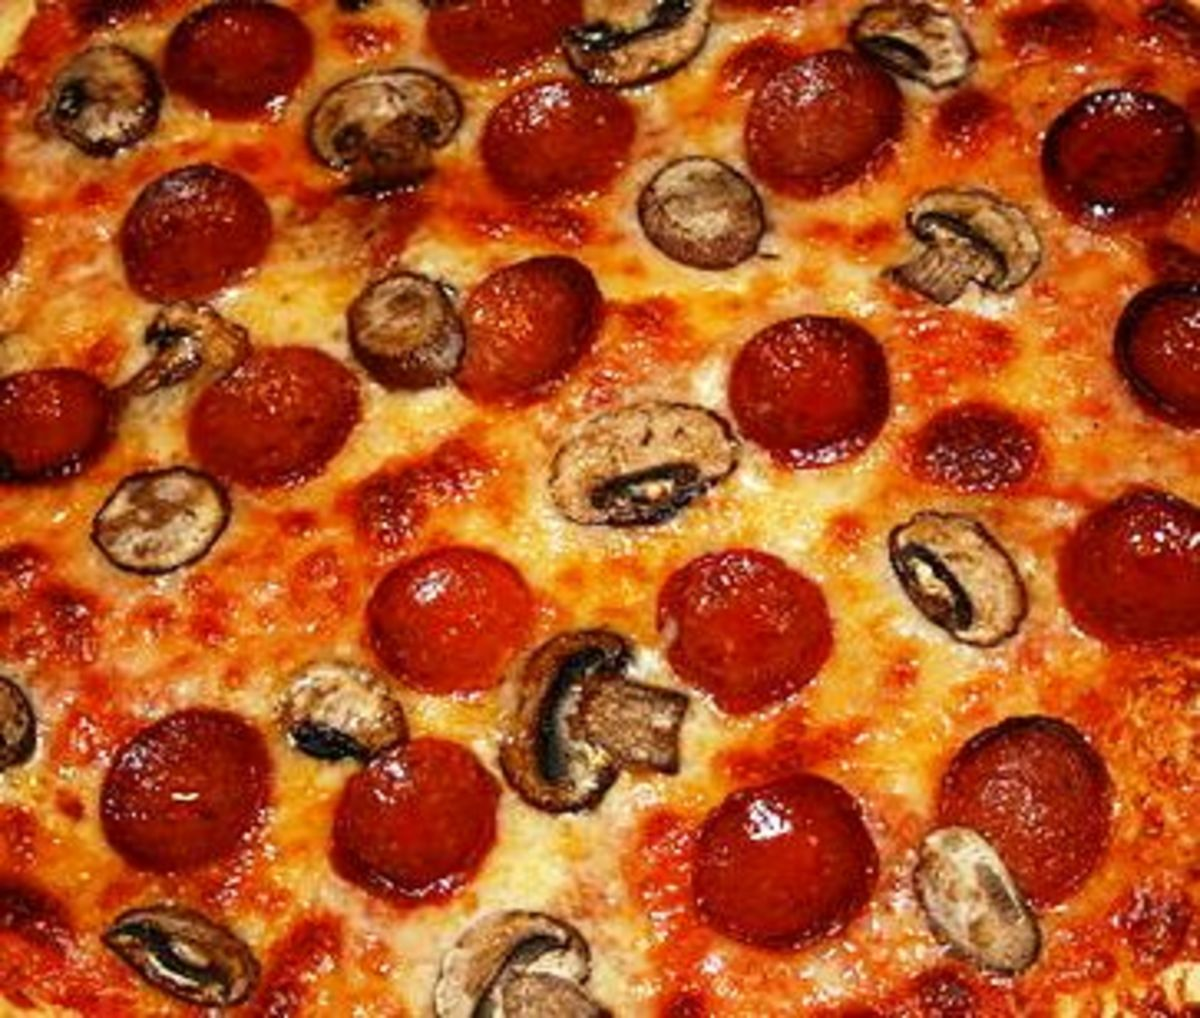 Pepperoni is a favorite pizza topper. With its spicy flavor, it is hard to beat.